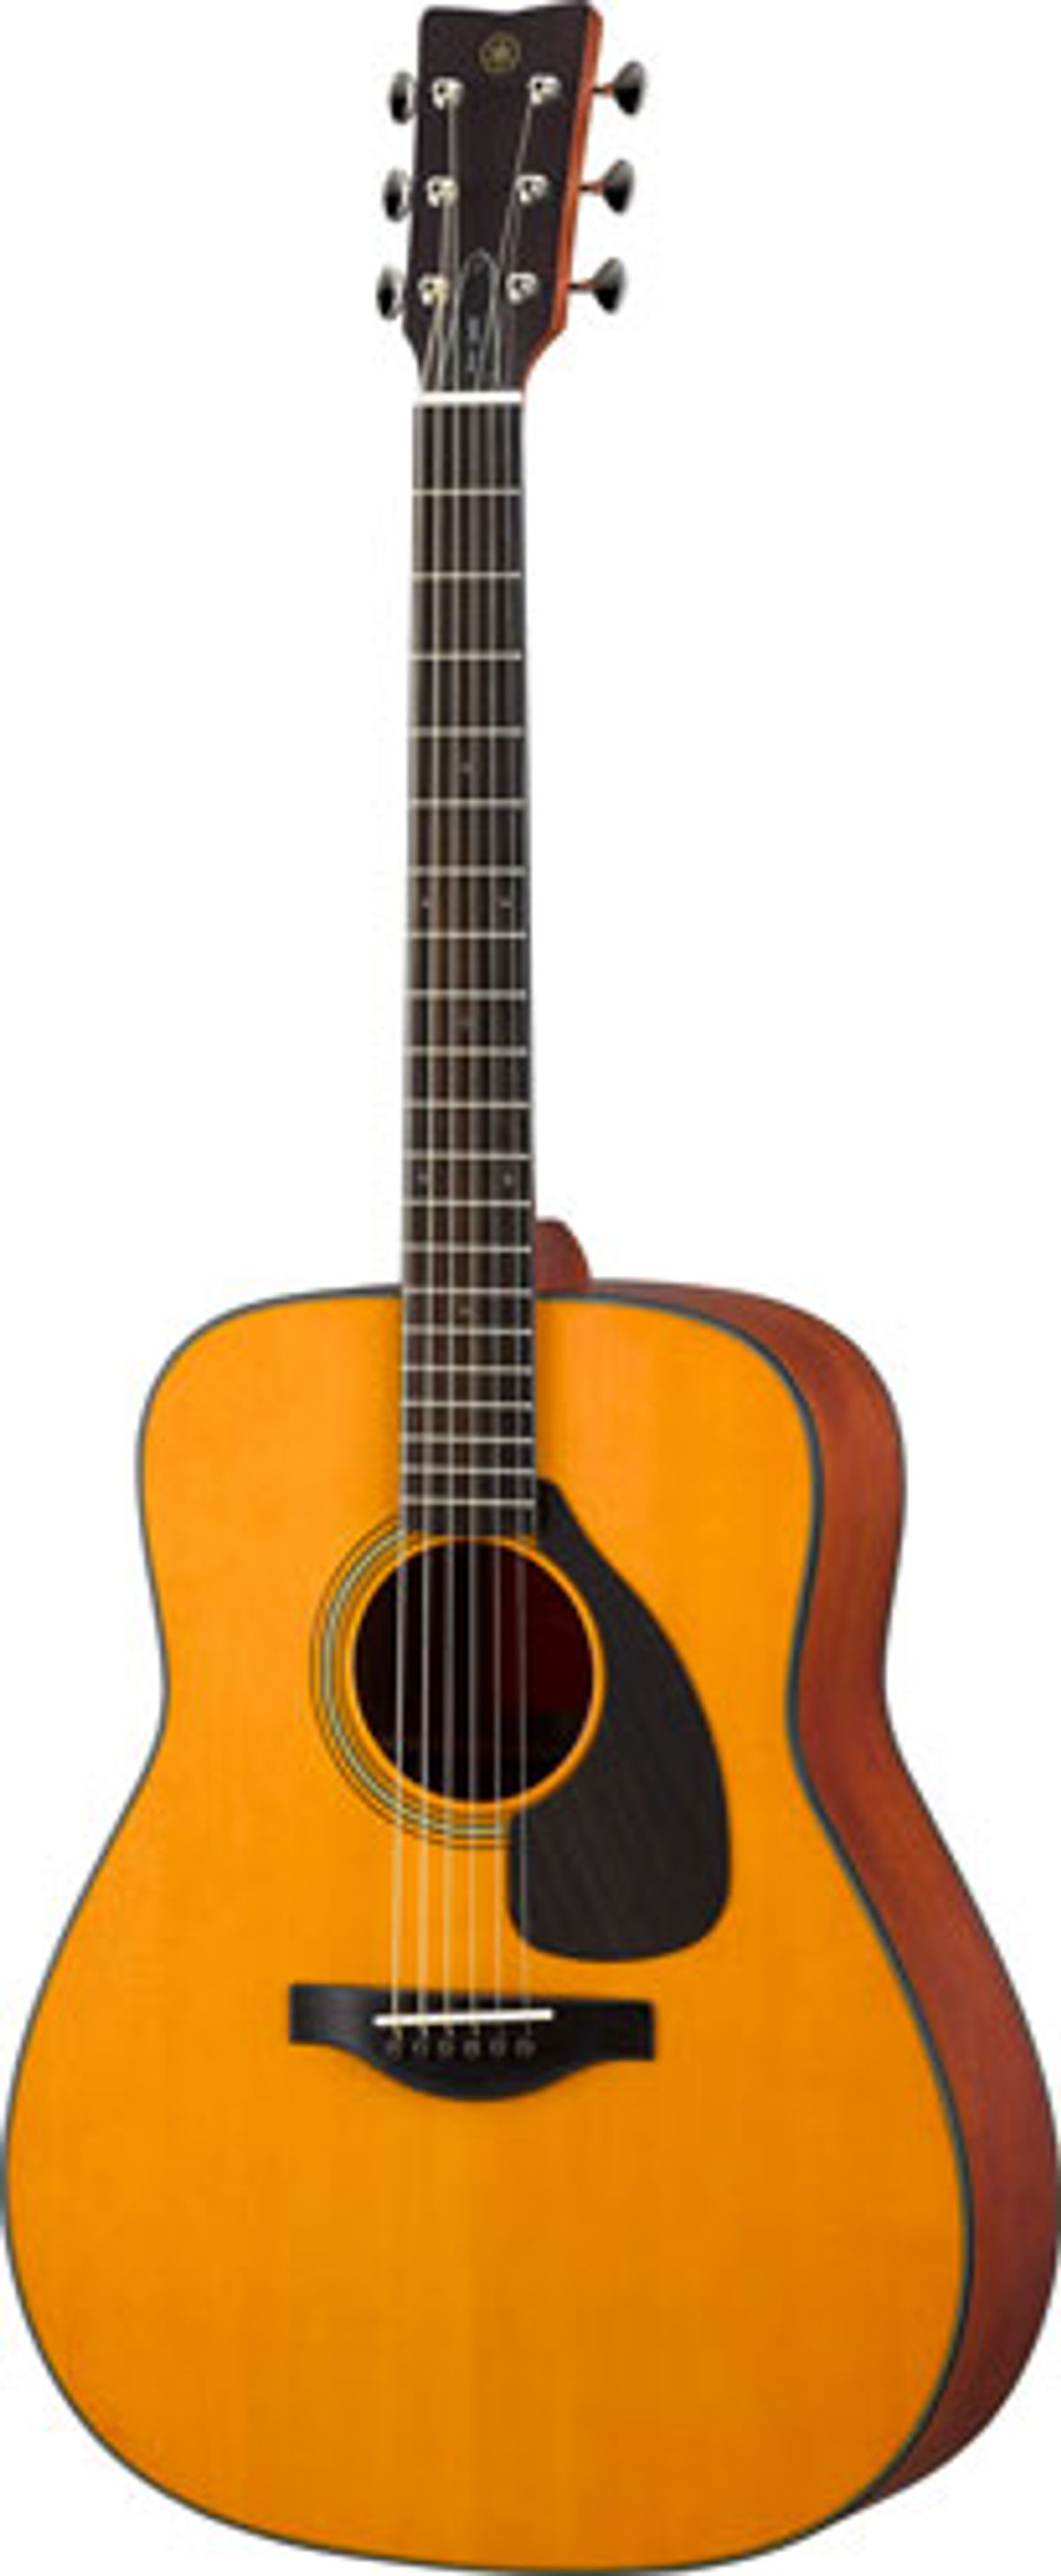 Yamaha Launches FG Red Label Acoustic Guitars